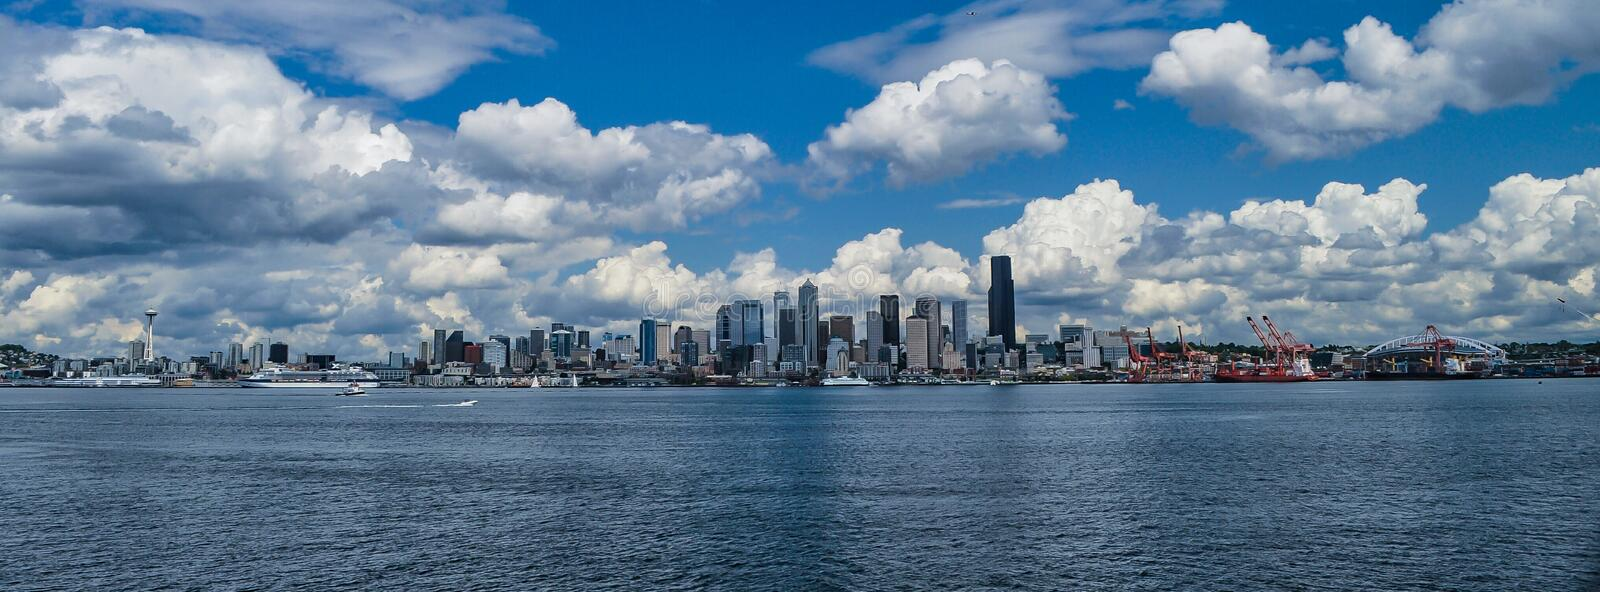 Seattle horisont royaltyfri bild